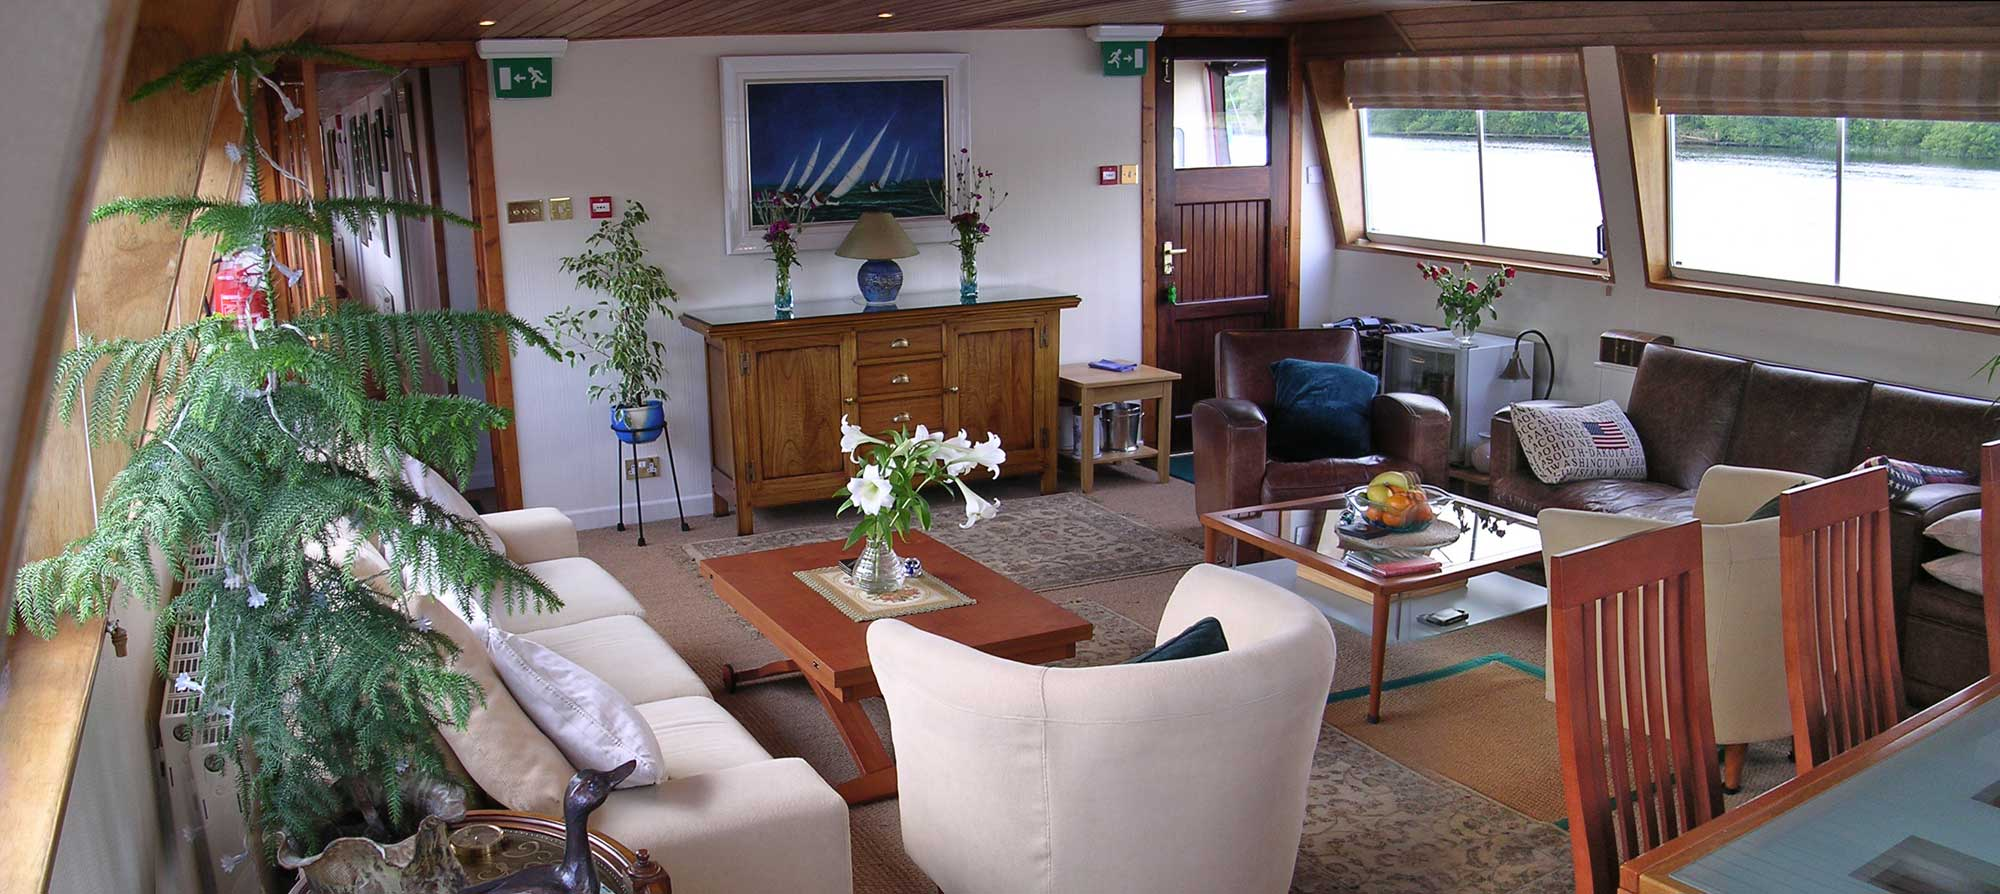 The Salon Aboard the Shannon Princess II.